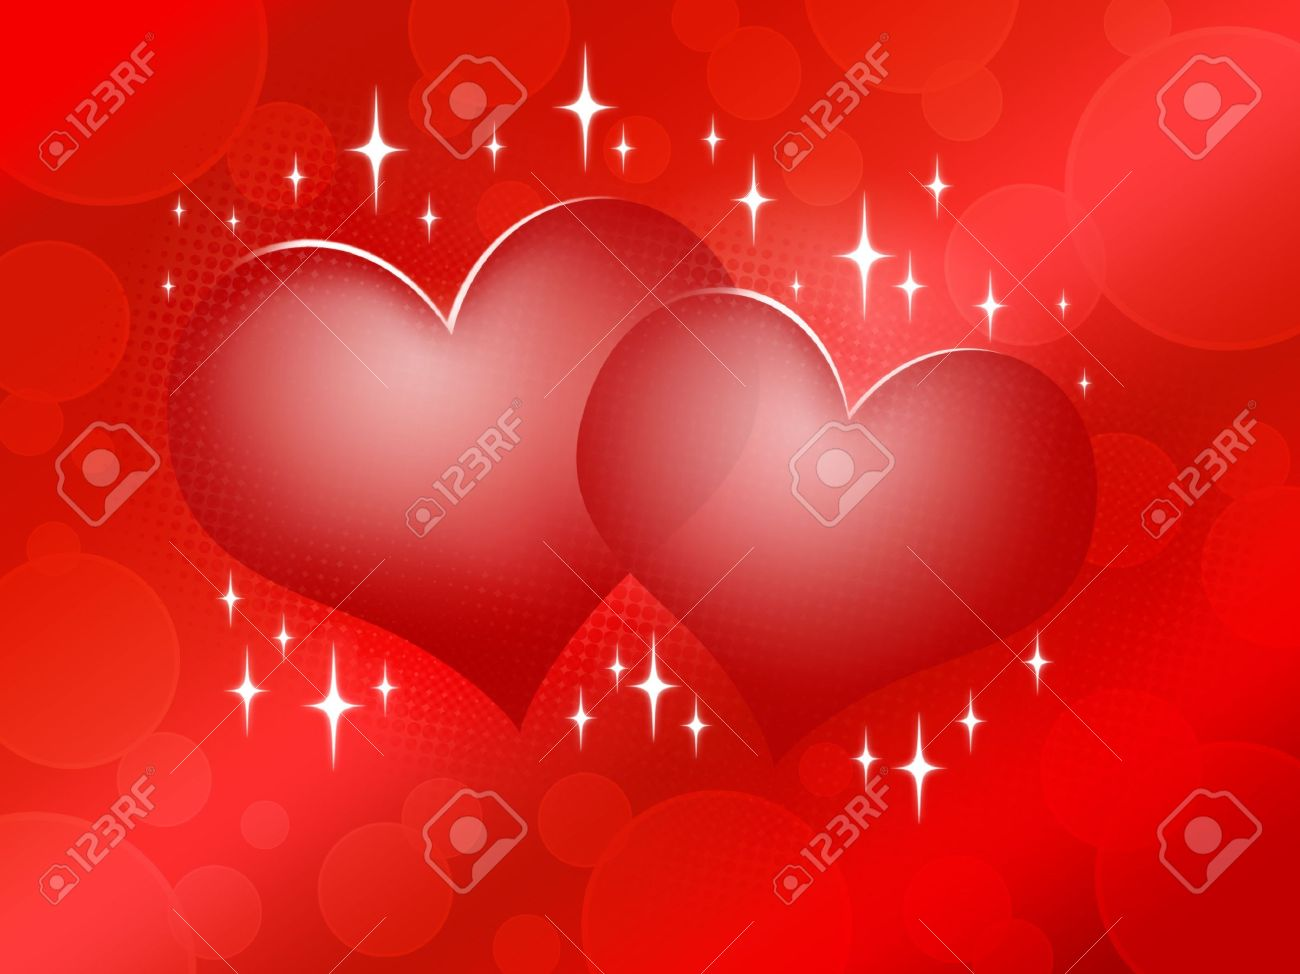 Two Red Hearts On Red Background Happy Valentine S Day Design